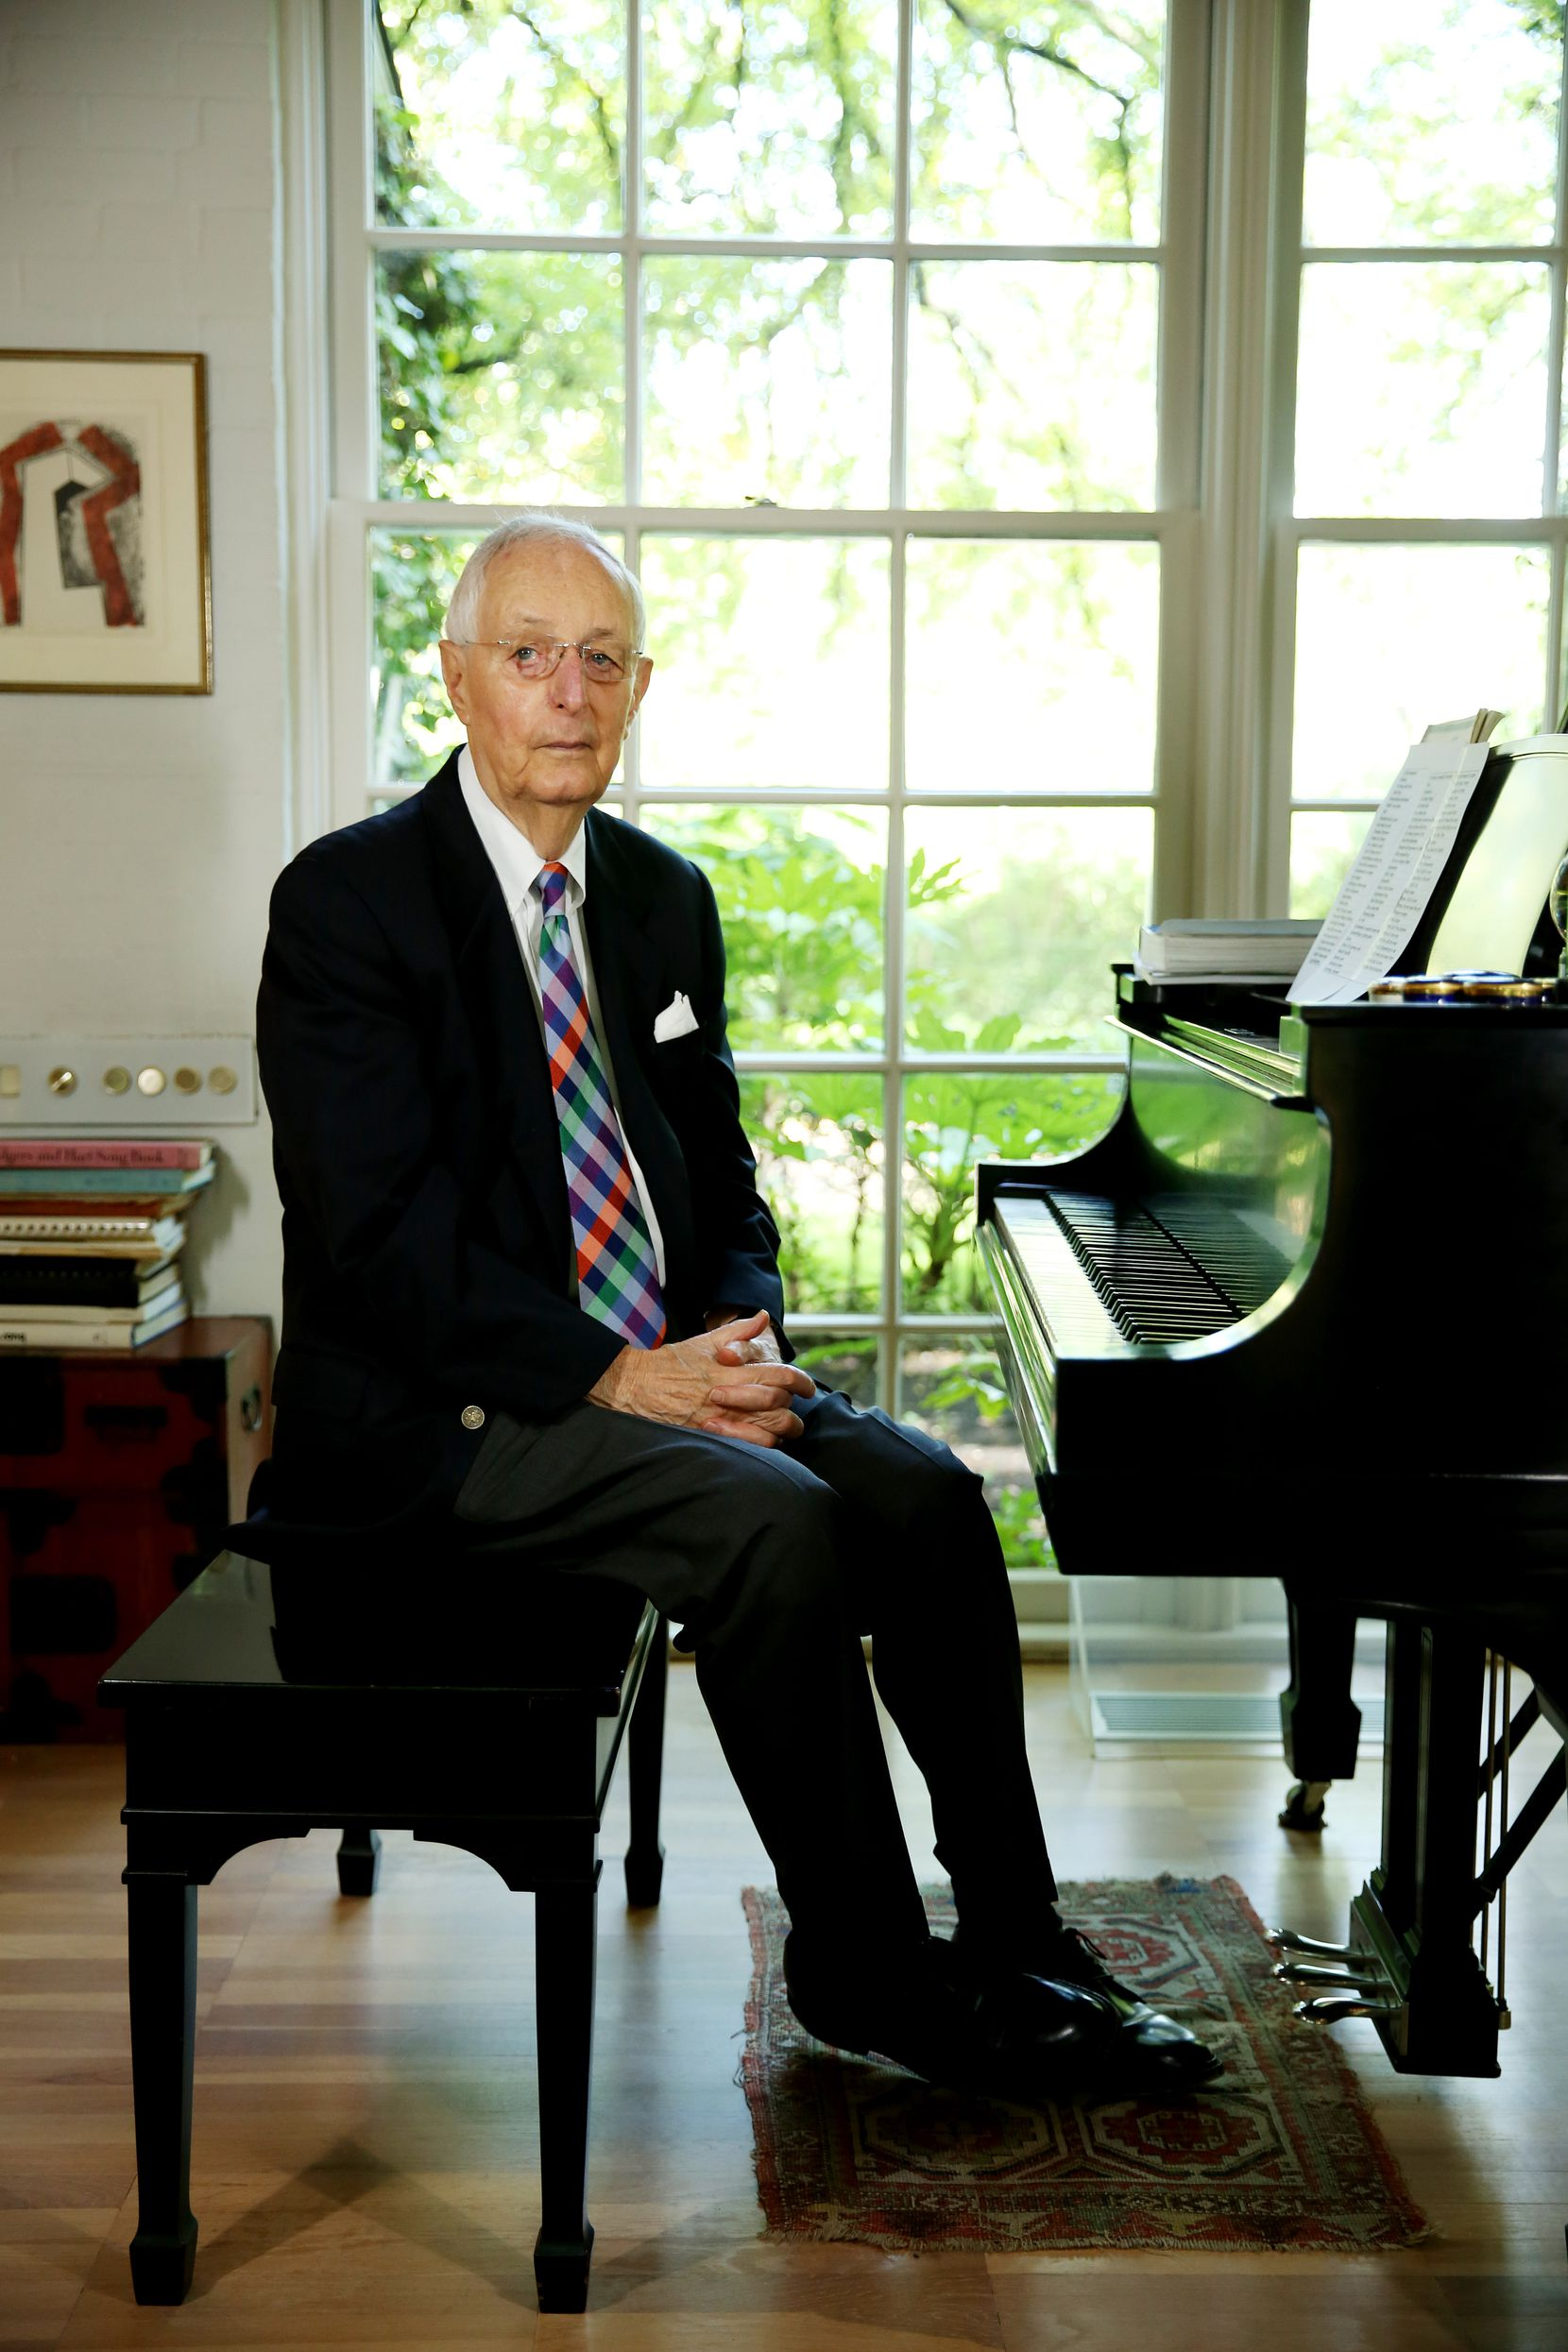 Roger Horchow photographed at his Dallas home in 2017. Composer George Gershwin played on Horchow's piano.